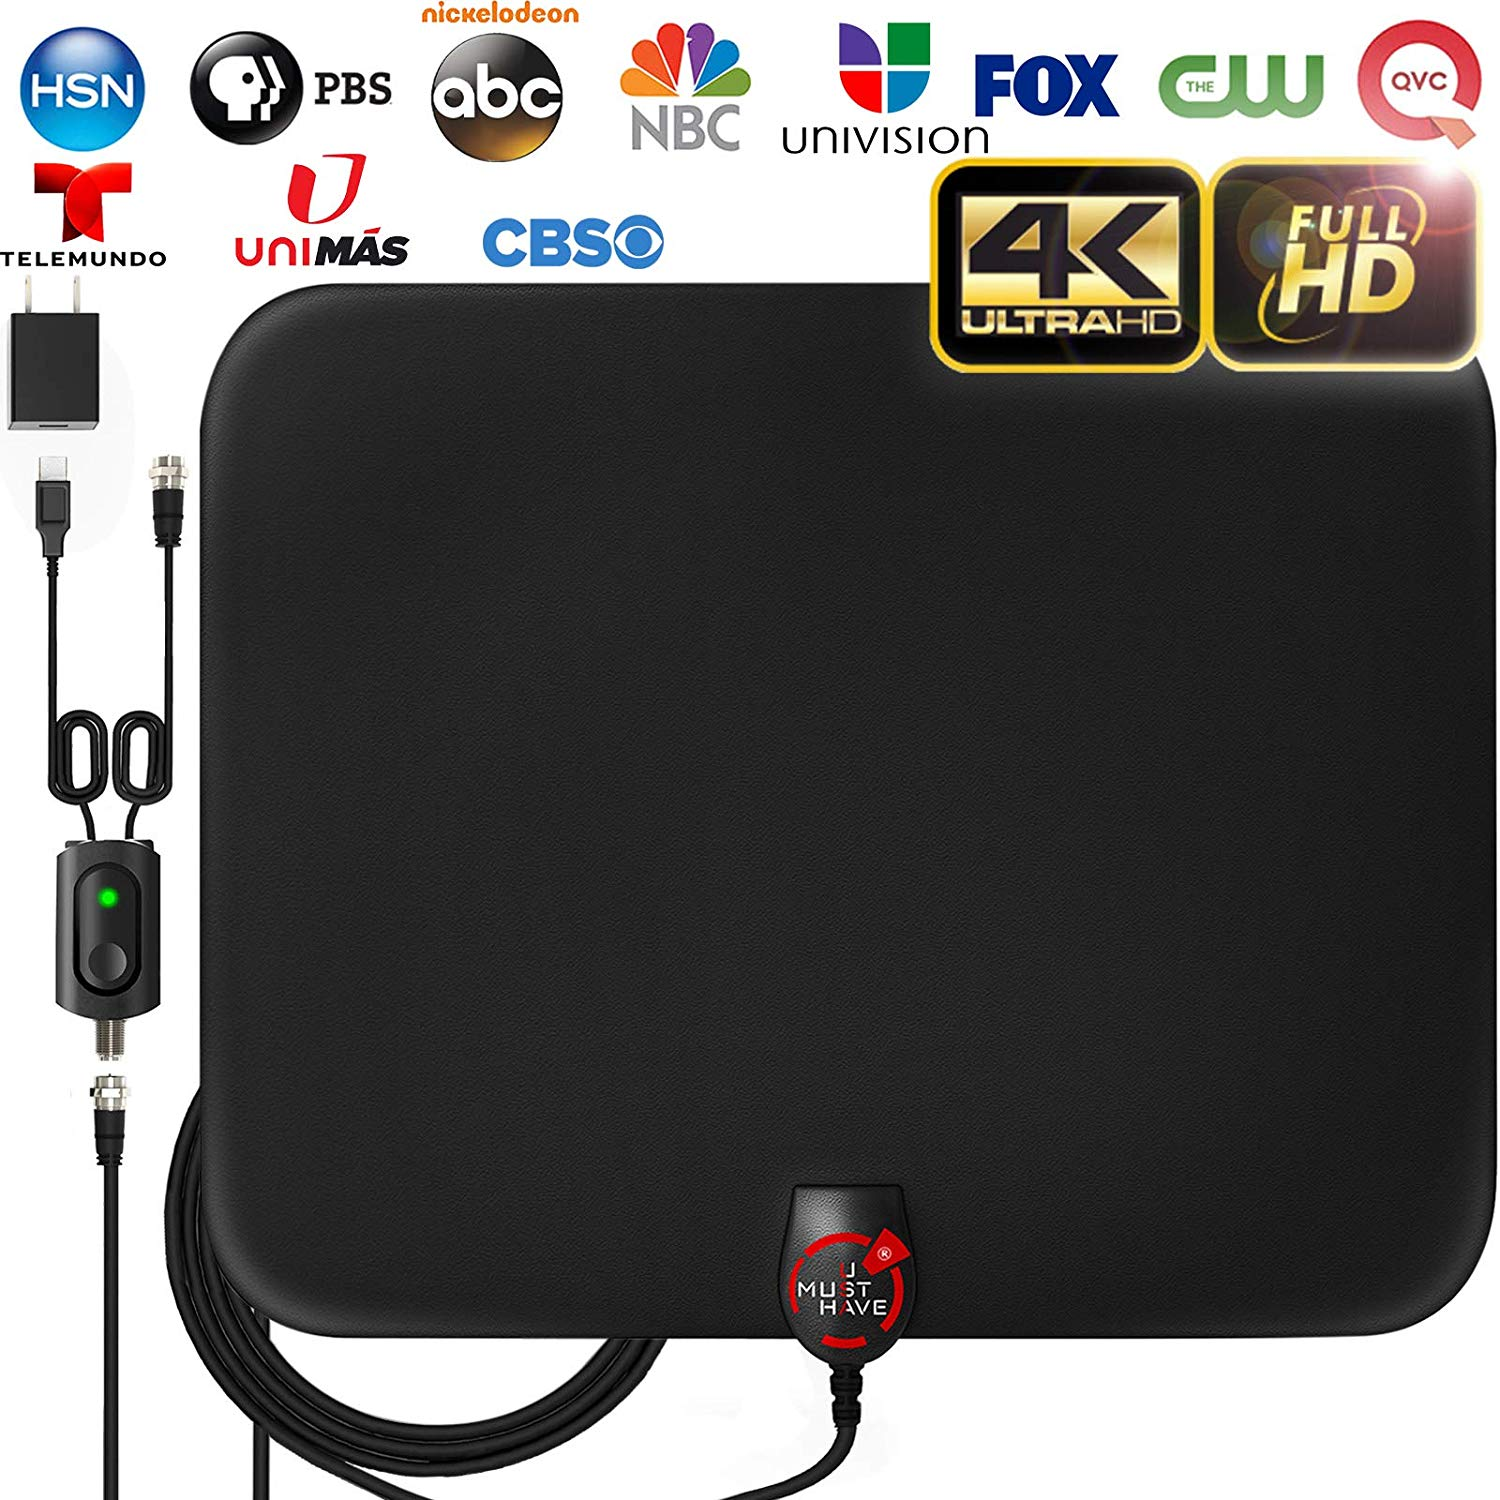 Amplified HD Digital TV Antenna from U-MUST-HAVE review